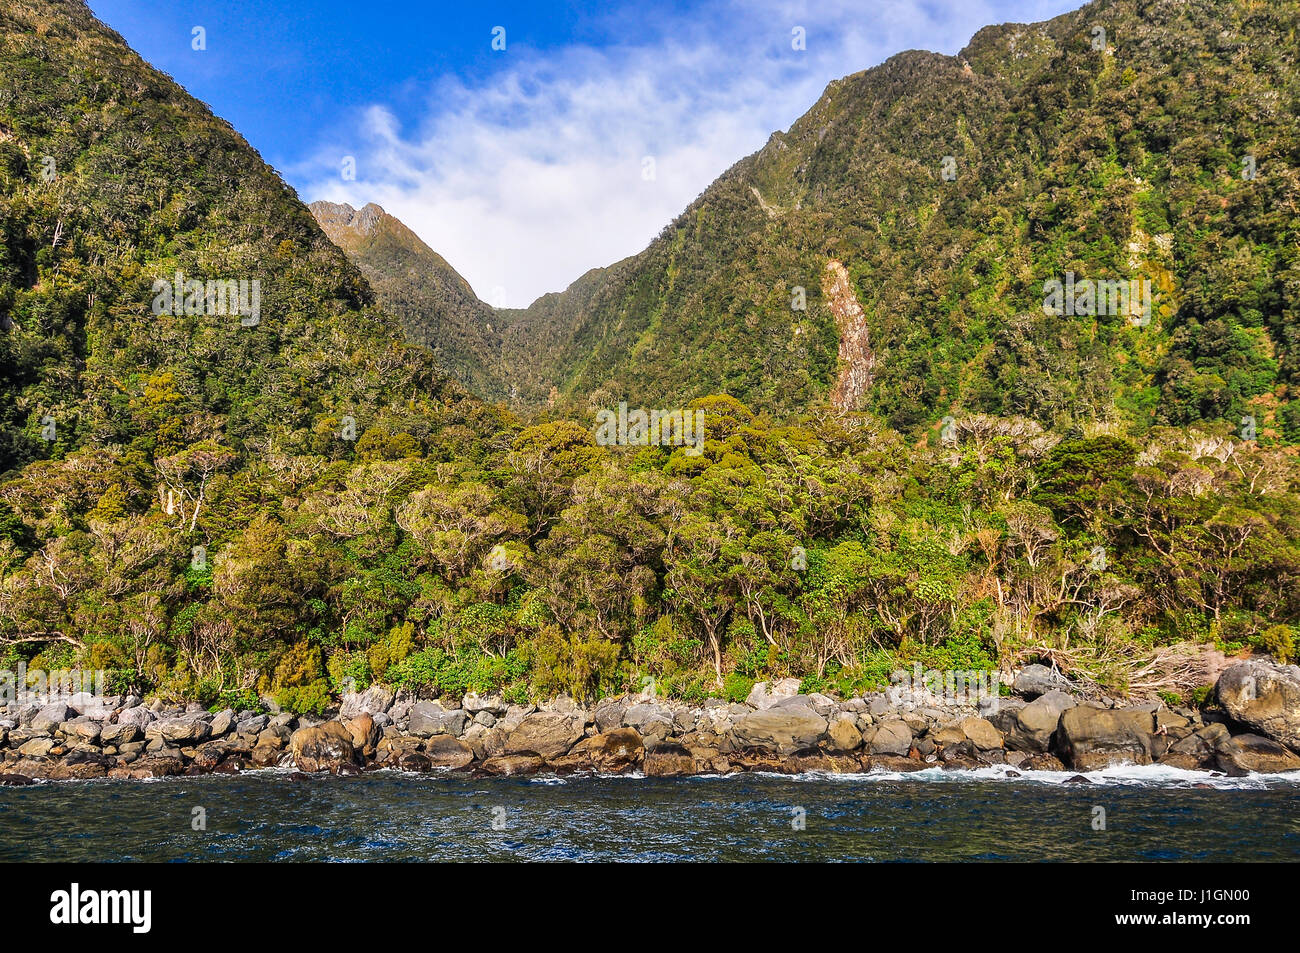 Lush forest in the Milford Sound, one of the most beautiful fiords in New Zealand - Stock Image